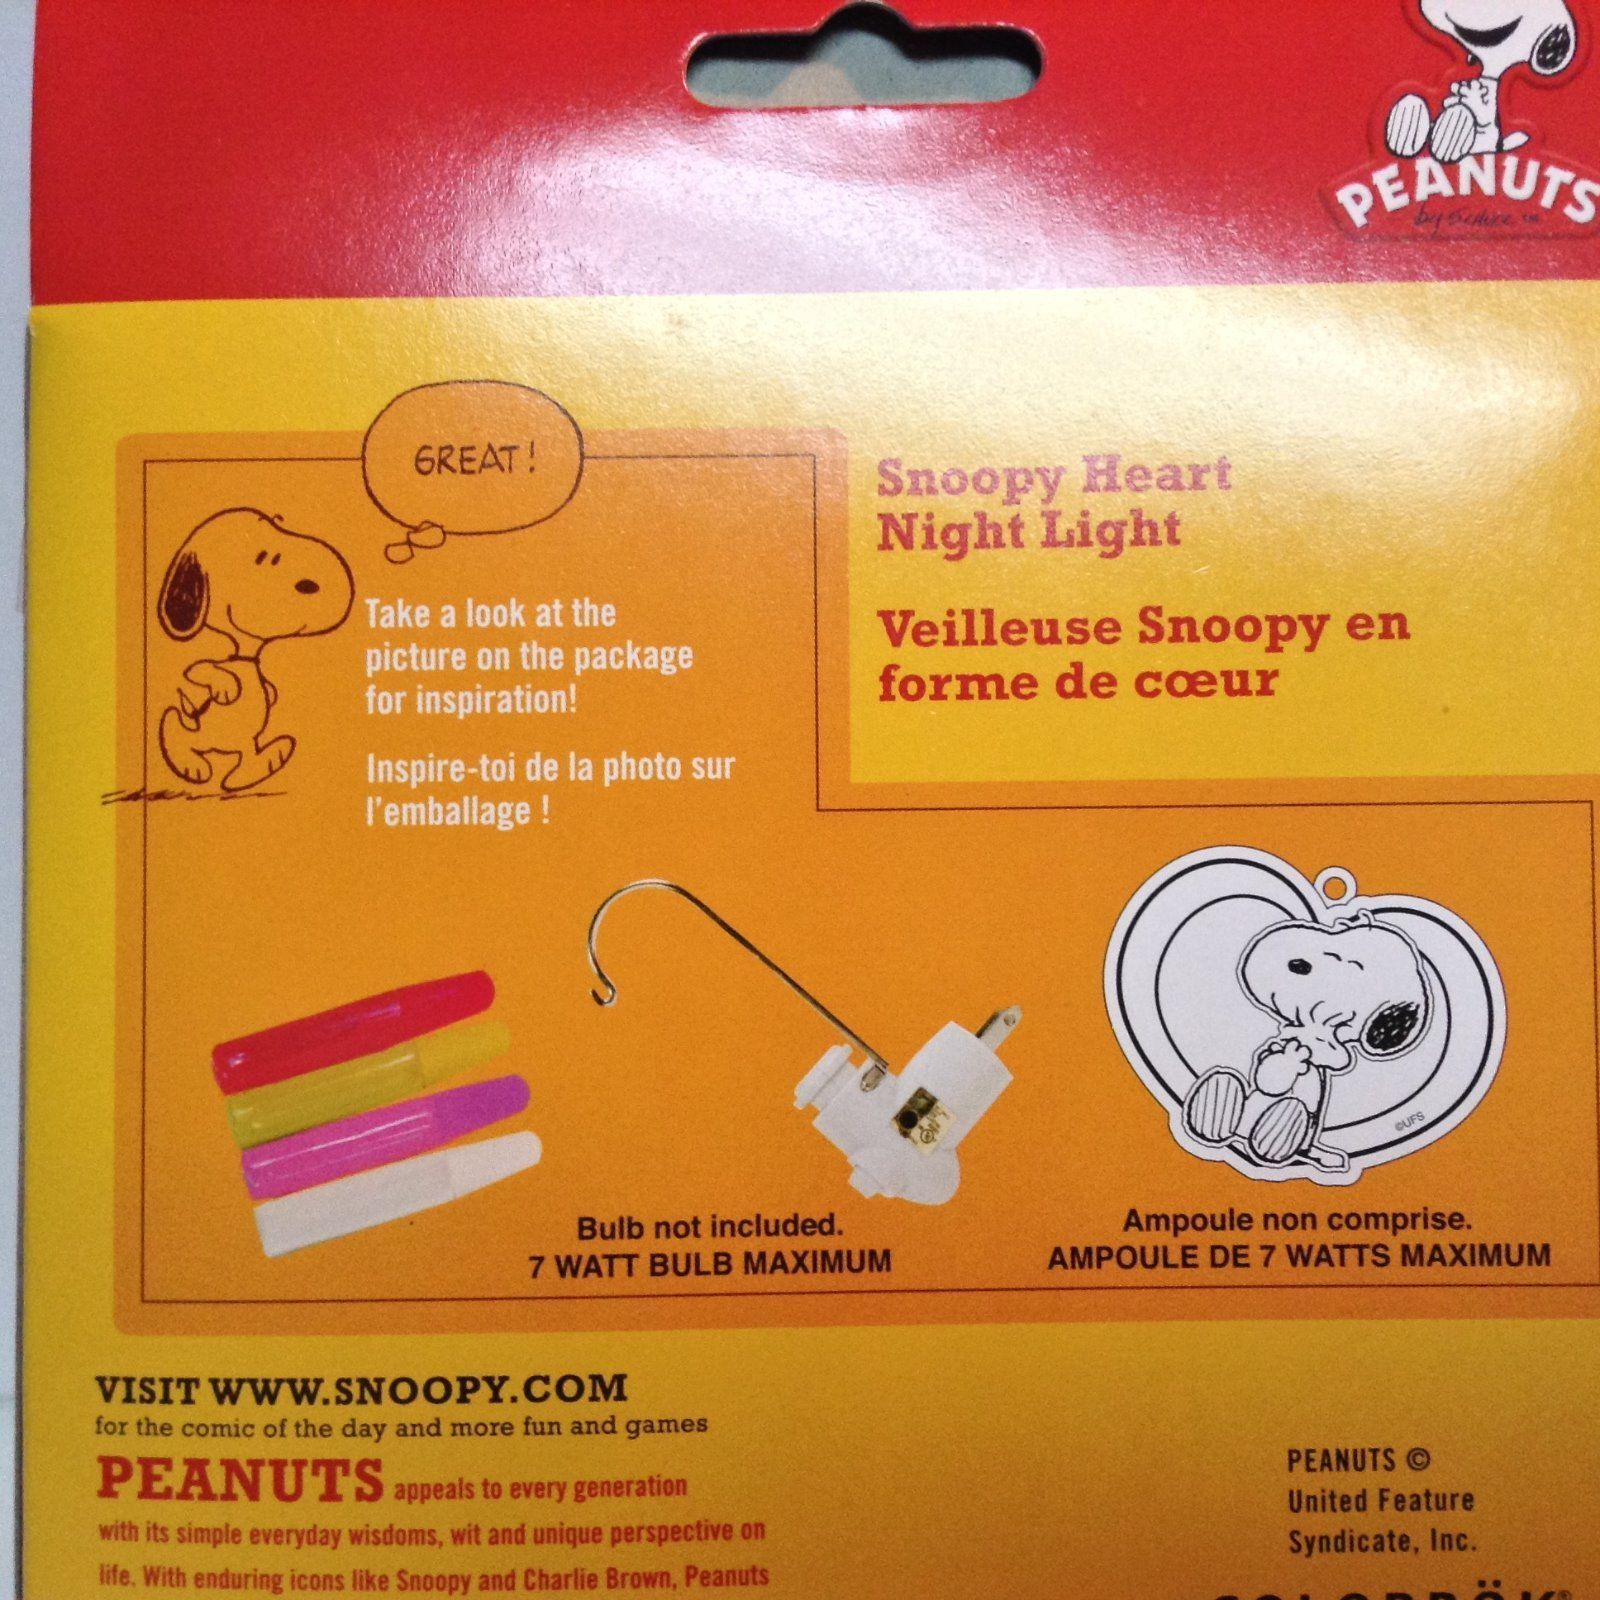 Peanuts Snoopy Heart Night Light DIY Color Kit NIB 8+